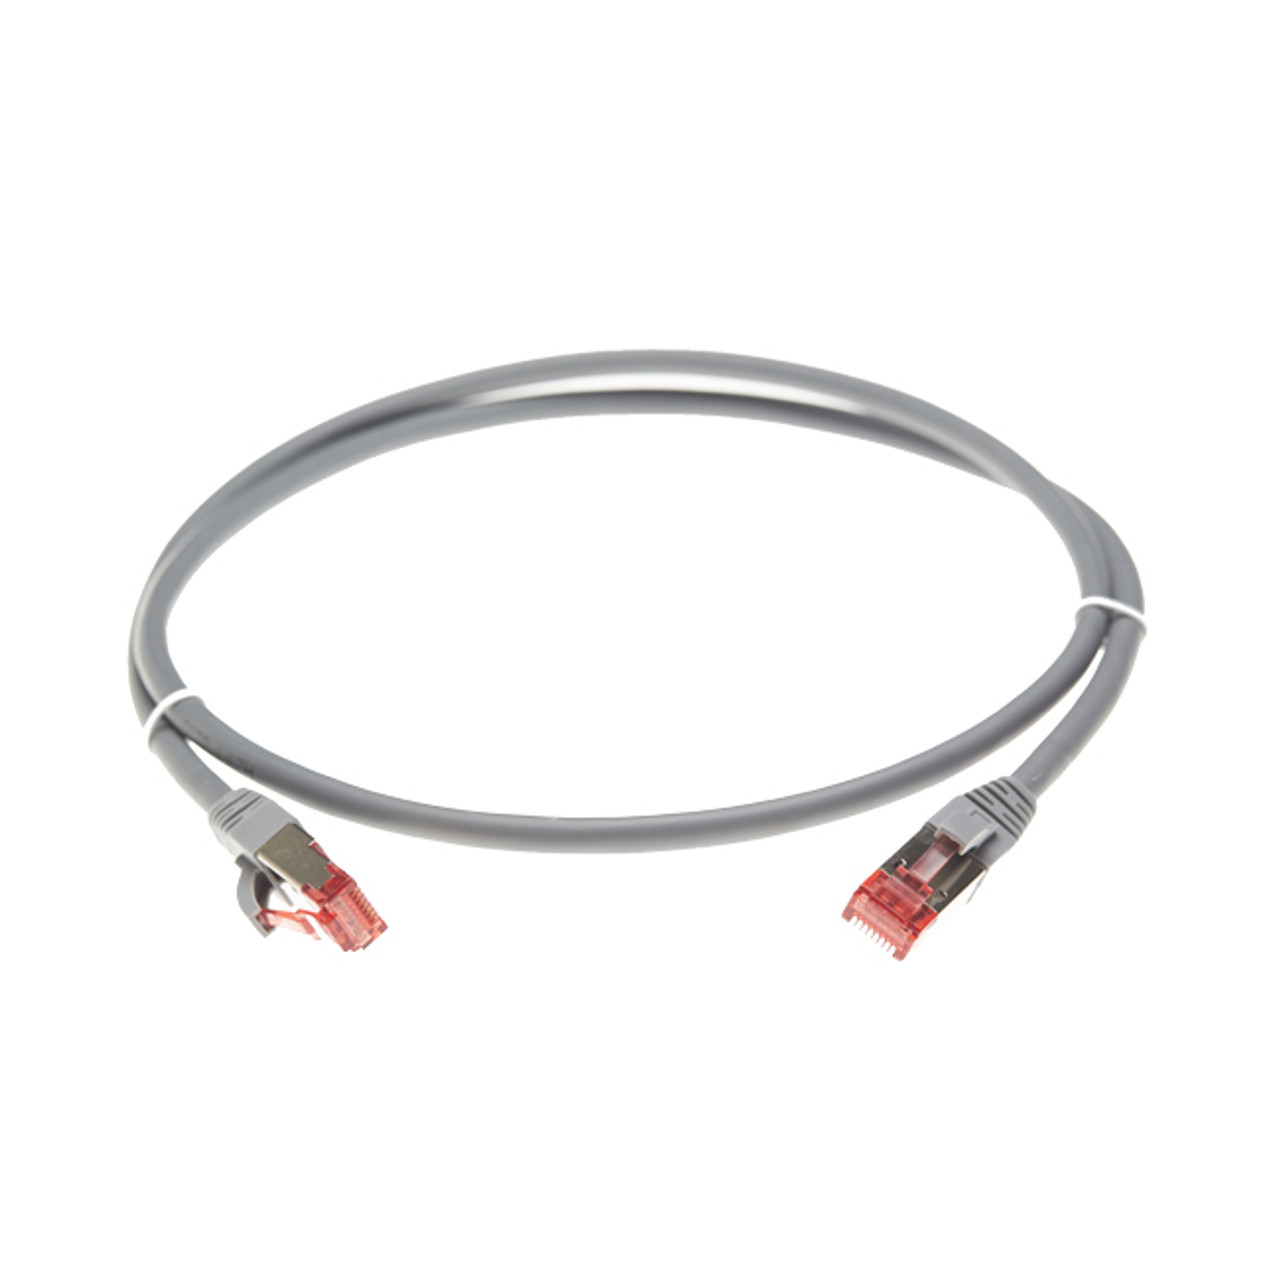 Image for 4m Cat 6A S/FTP LSZH Ethernet Network Cable. Grey CX Computer Superstore